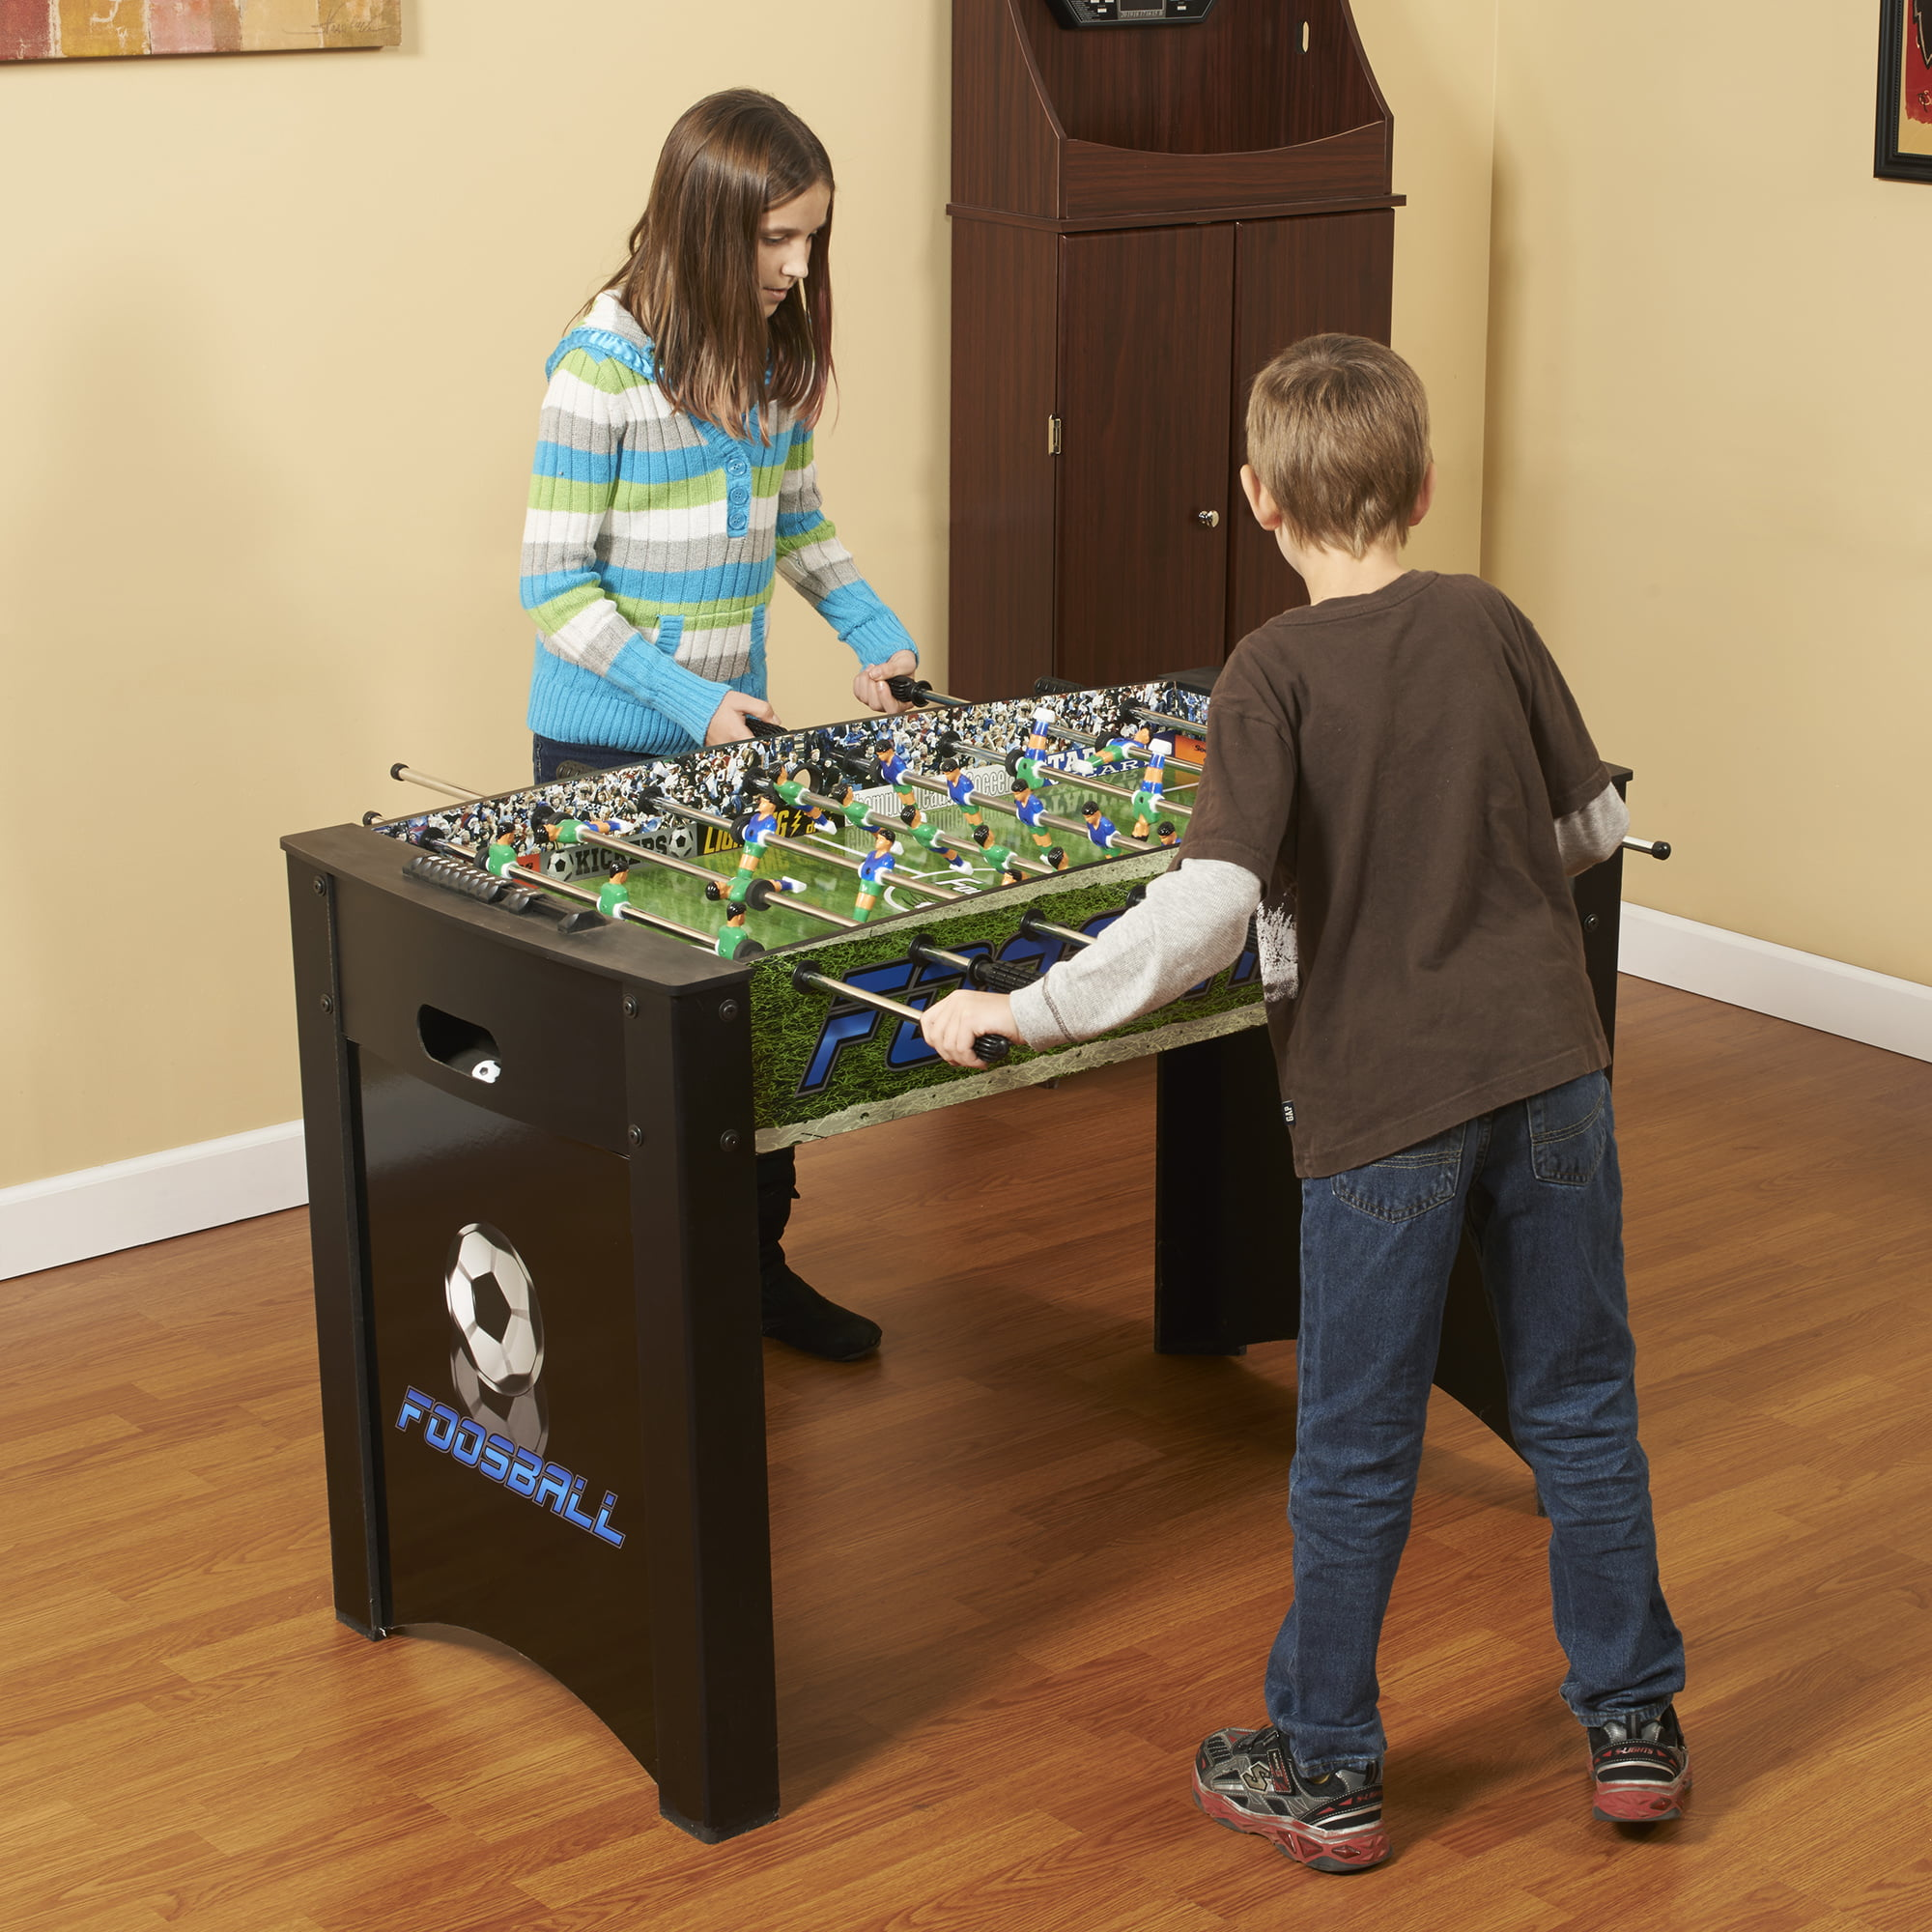 Hathaway Playoff 4-Foot Foosball Table, Soccer Game for Kids and Adults with Ergonomic Handles, Analog Scoring and Leg... by Blue Wave